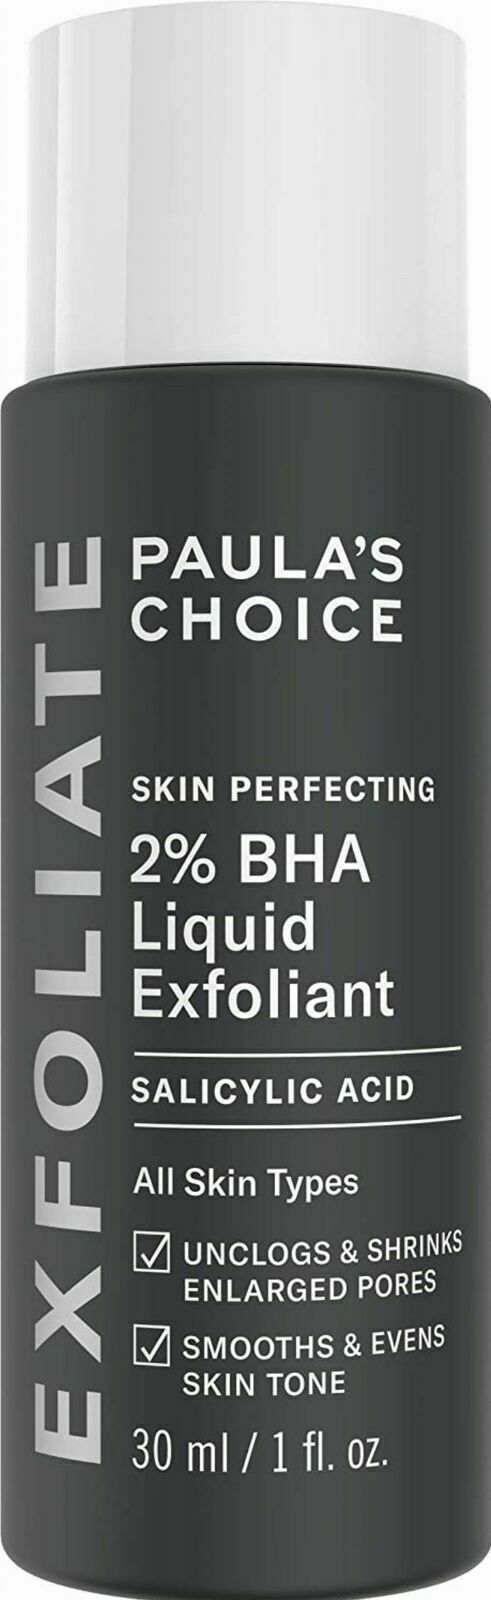 Paulas Choice-SKIN PERFECTING 2% BHA Liquid Salicylic Acid E